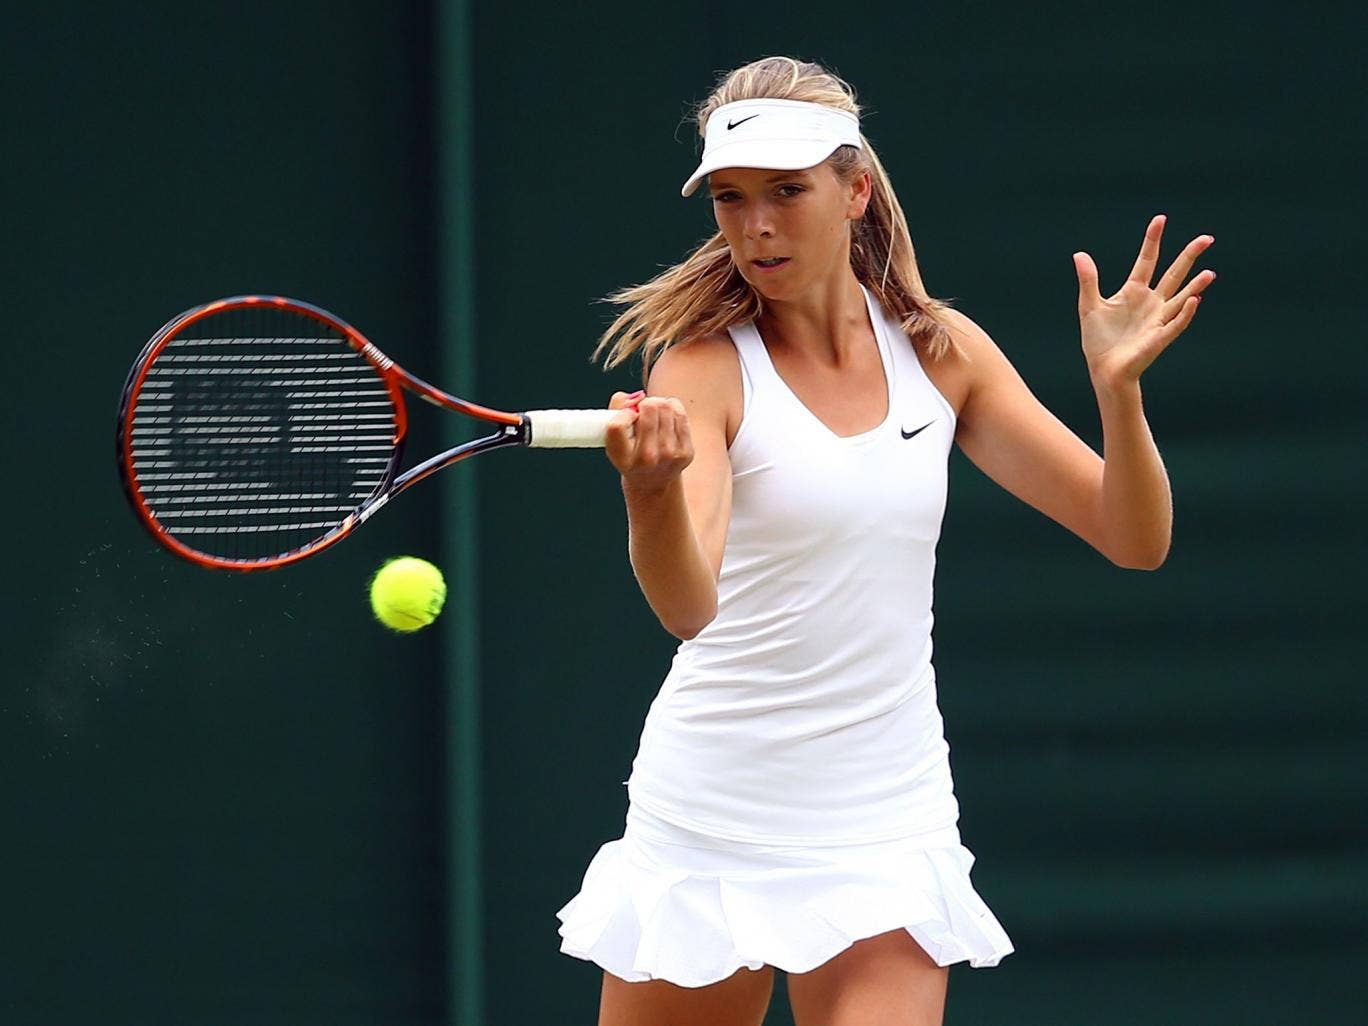 Katie Boulter of Great Britain during her Girls' Singles first round match against Priscilla Hon of Australia on day seven of Wimbledon